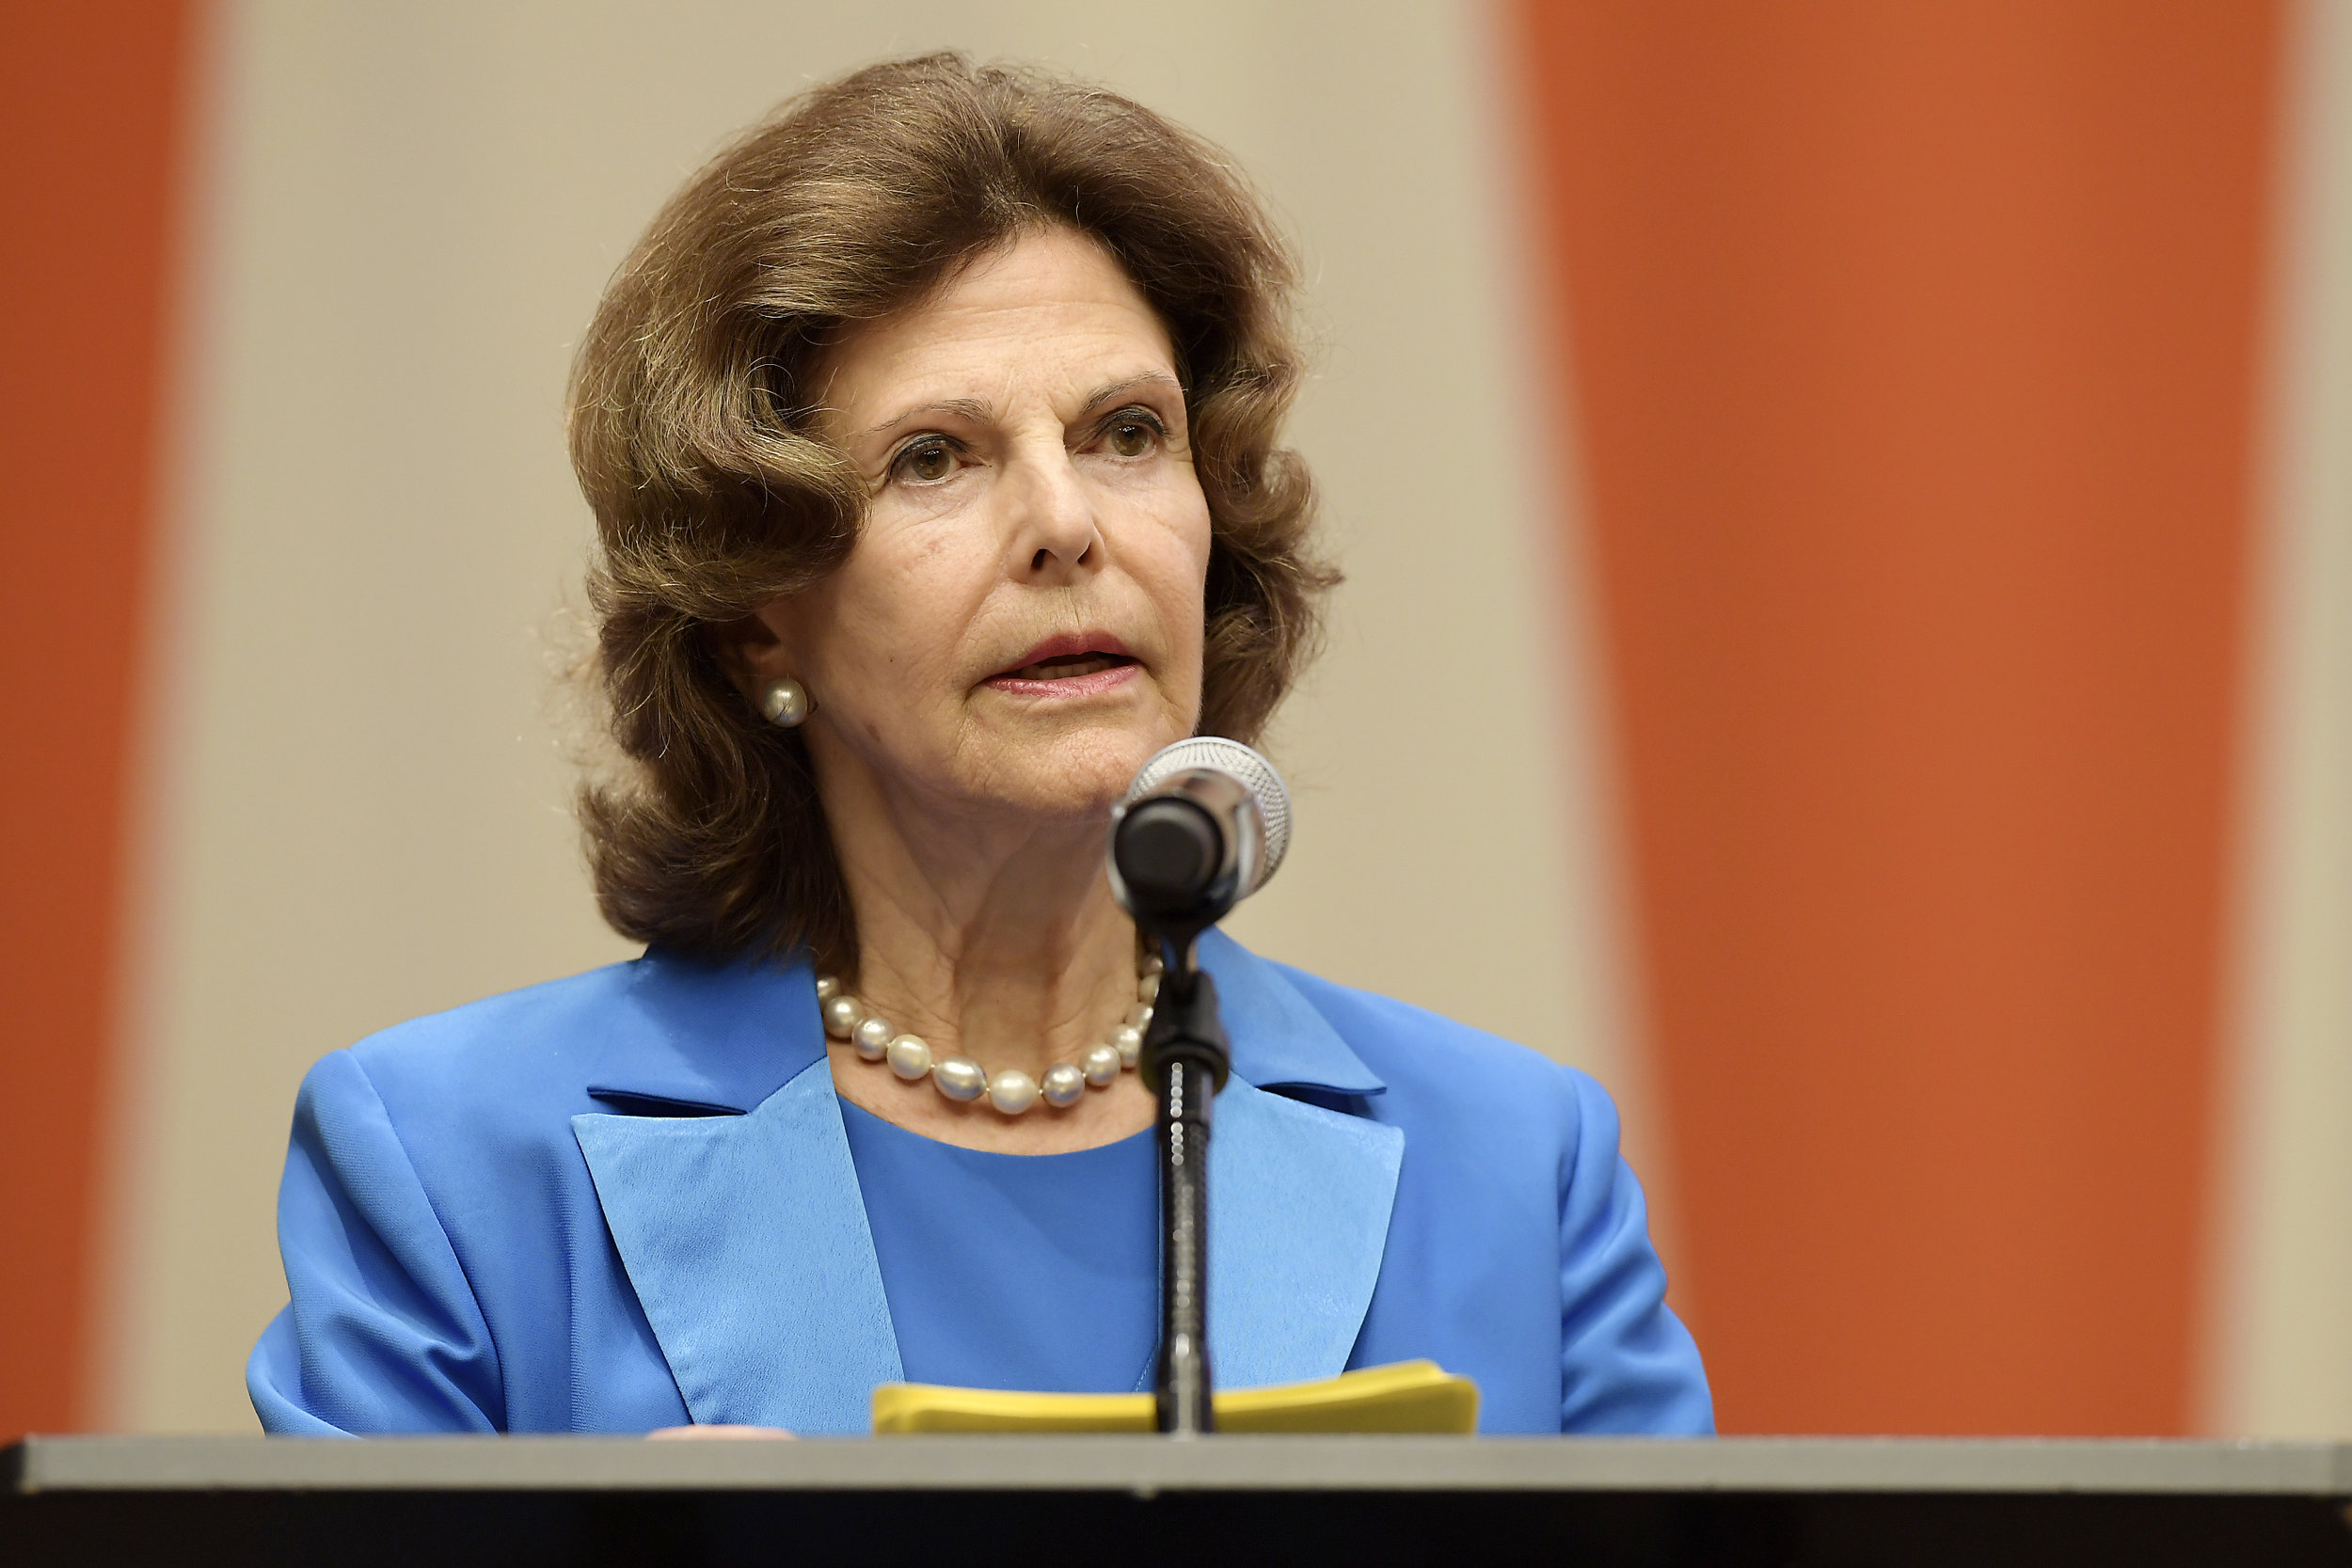 H.M. QUEEN SILVIA OF SWEDEN SPEECH -